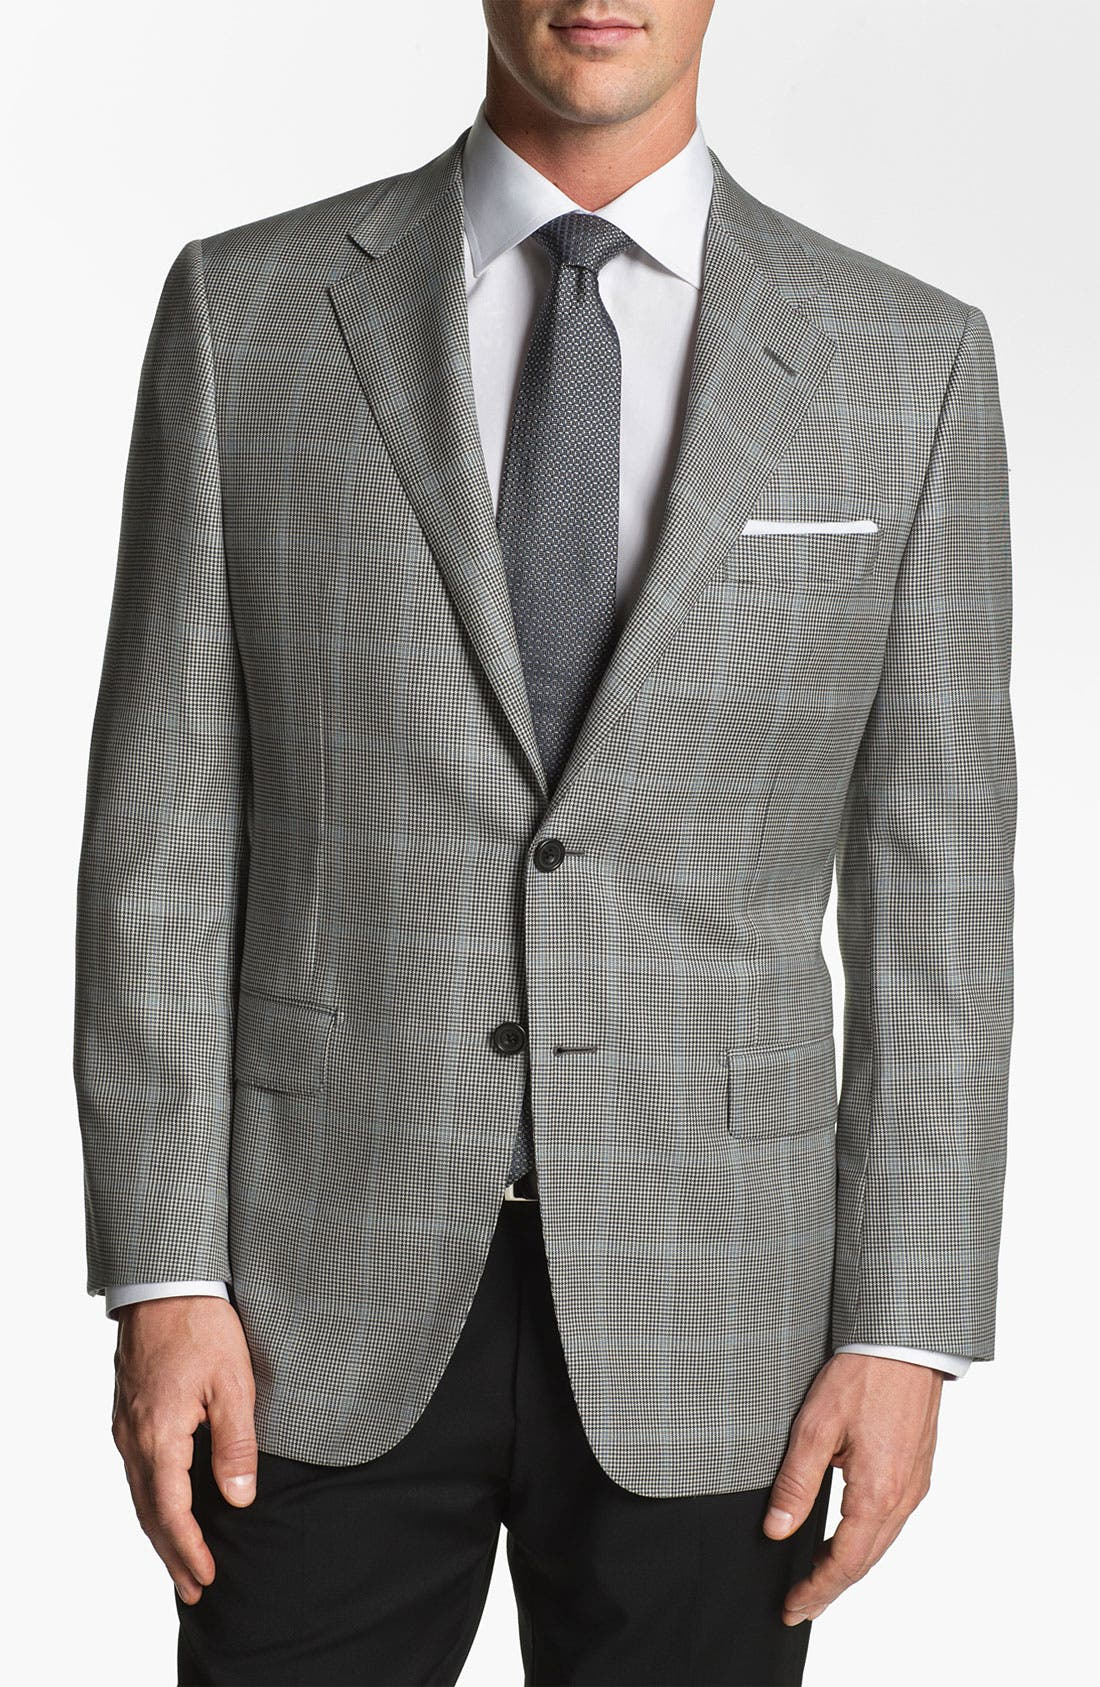 Alternate Image 1 Selected - Hickey Freeman Houndstooth Sportcoat